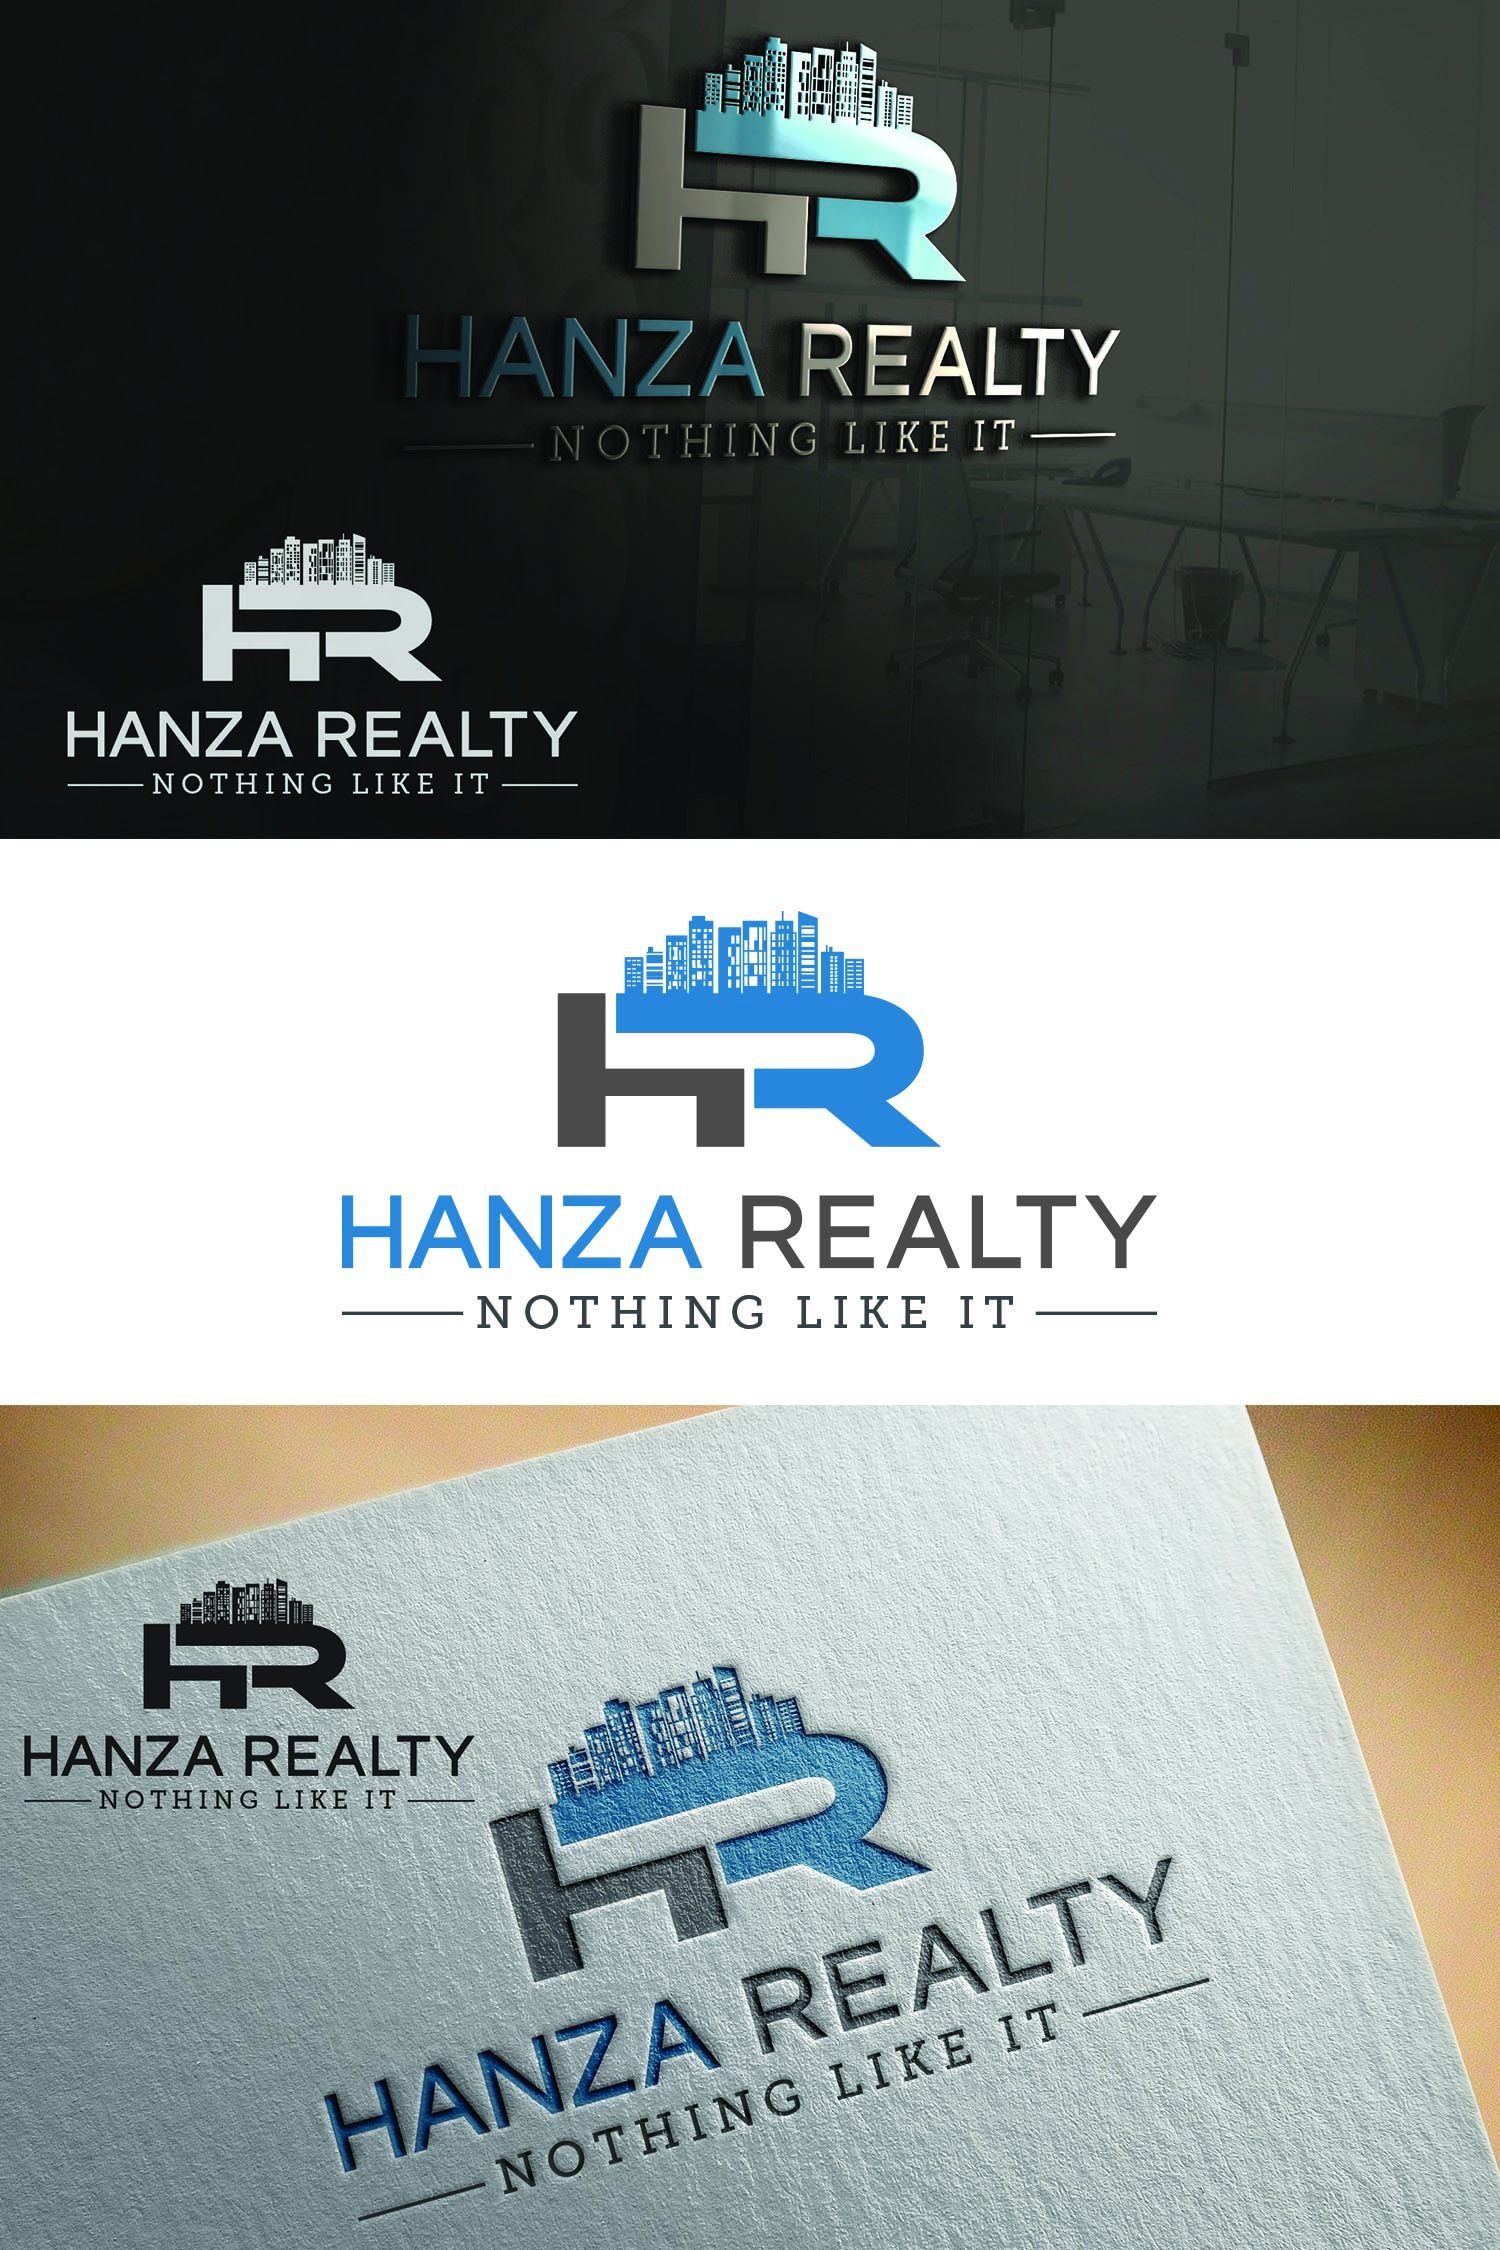 Logo Design by Umair ahmed Iqbal - Entry No. 145 in the Logo Design Contest Logo Design for Hanza Realty.